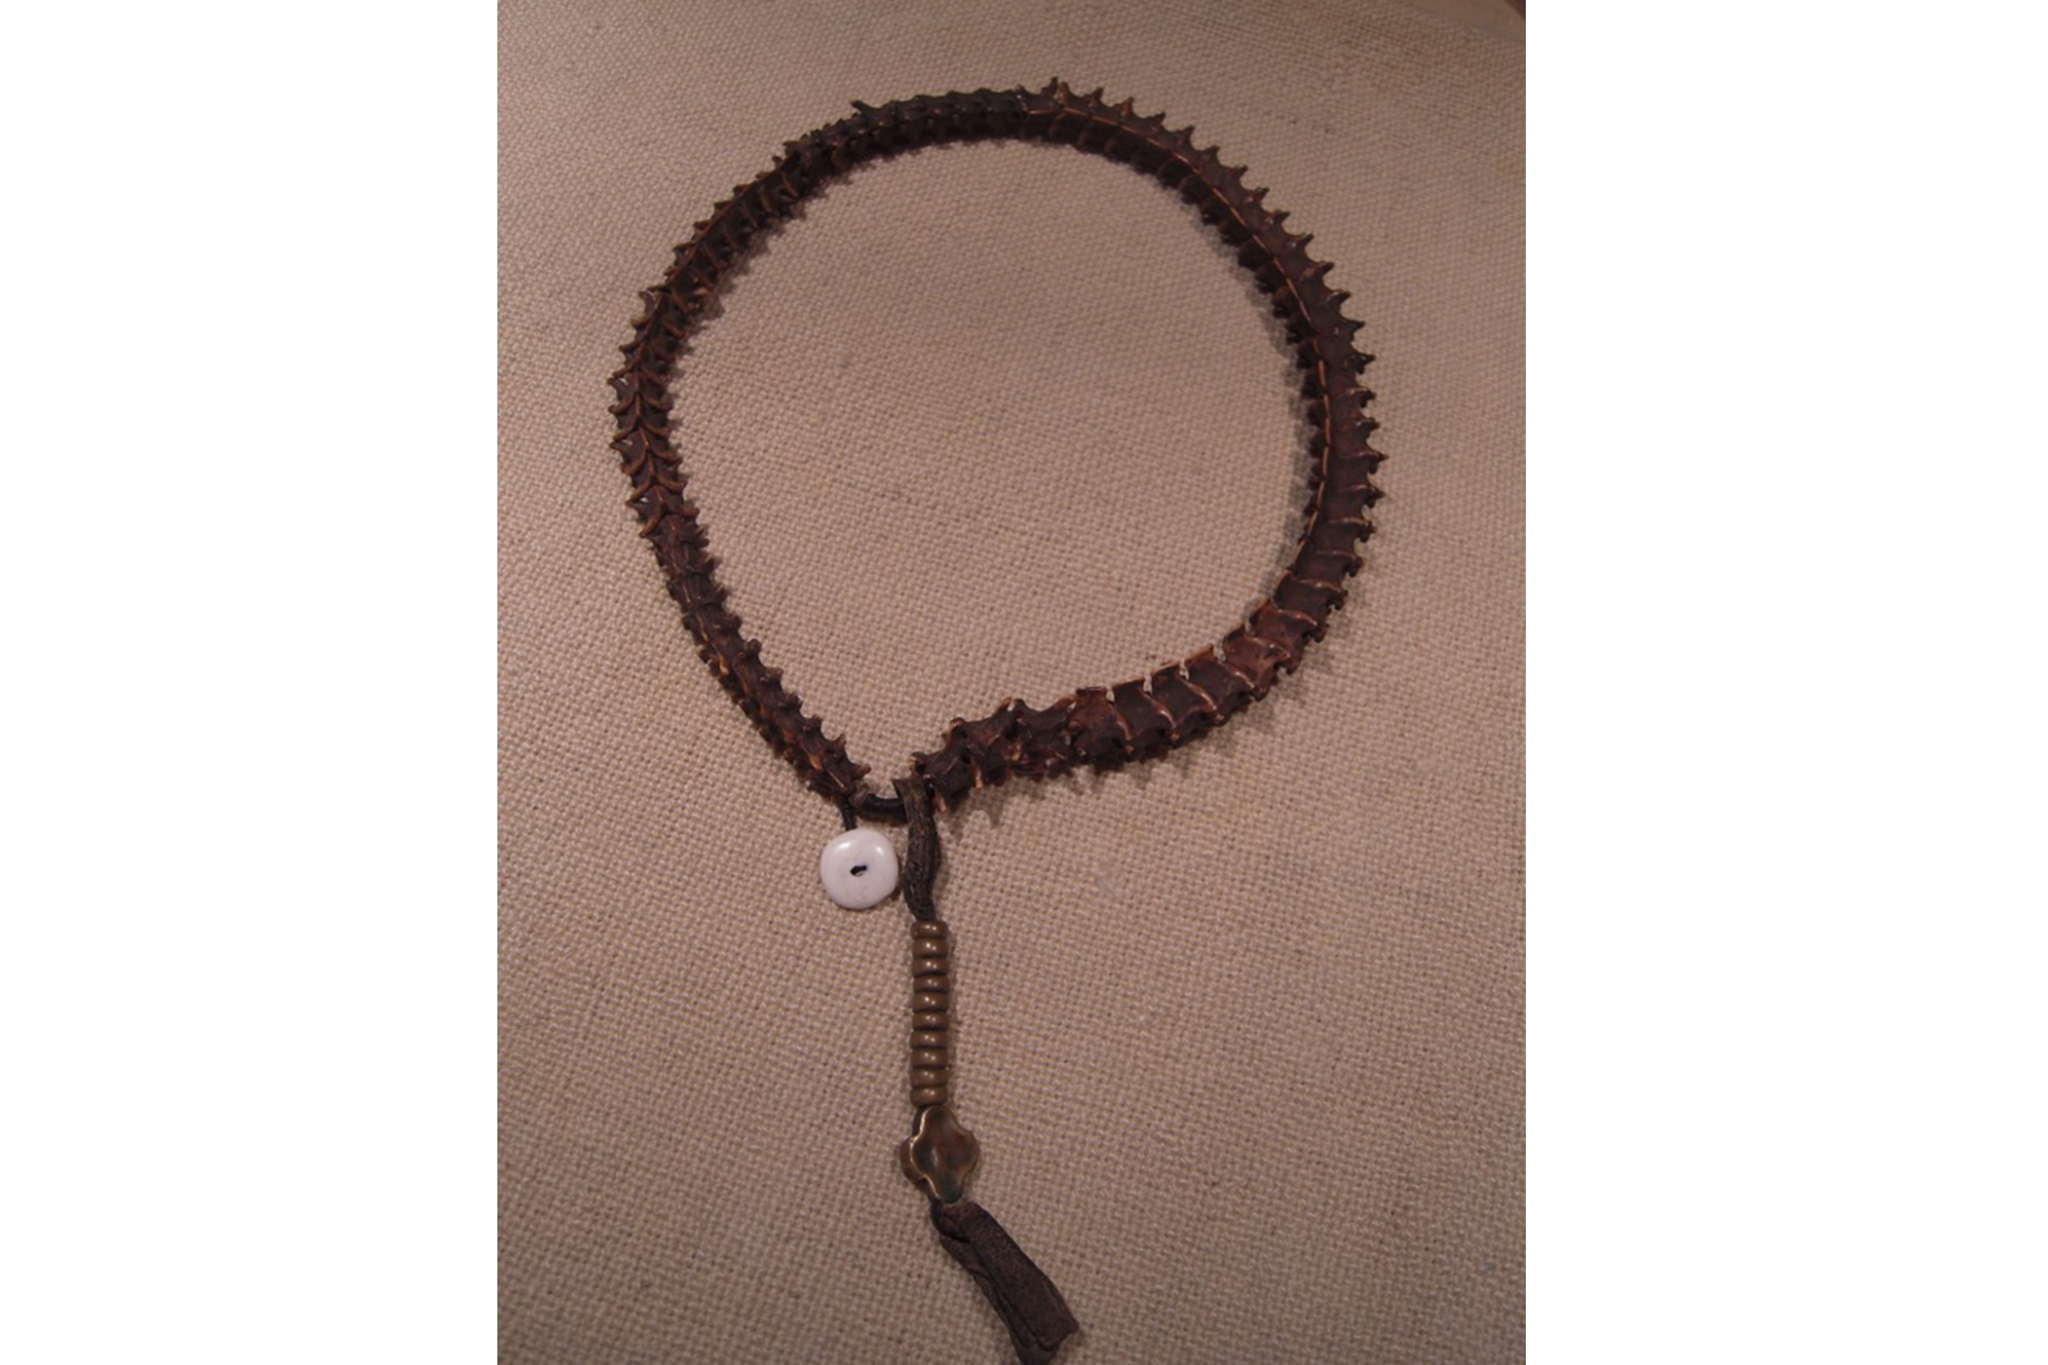 Prayer beads made from snake spine at the Rubin Museum of Art